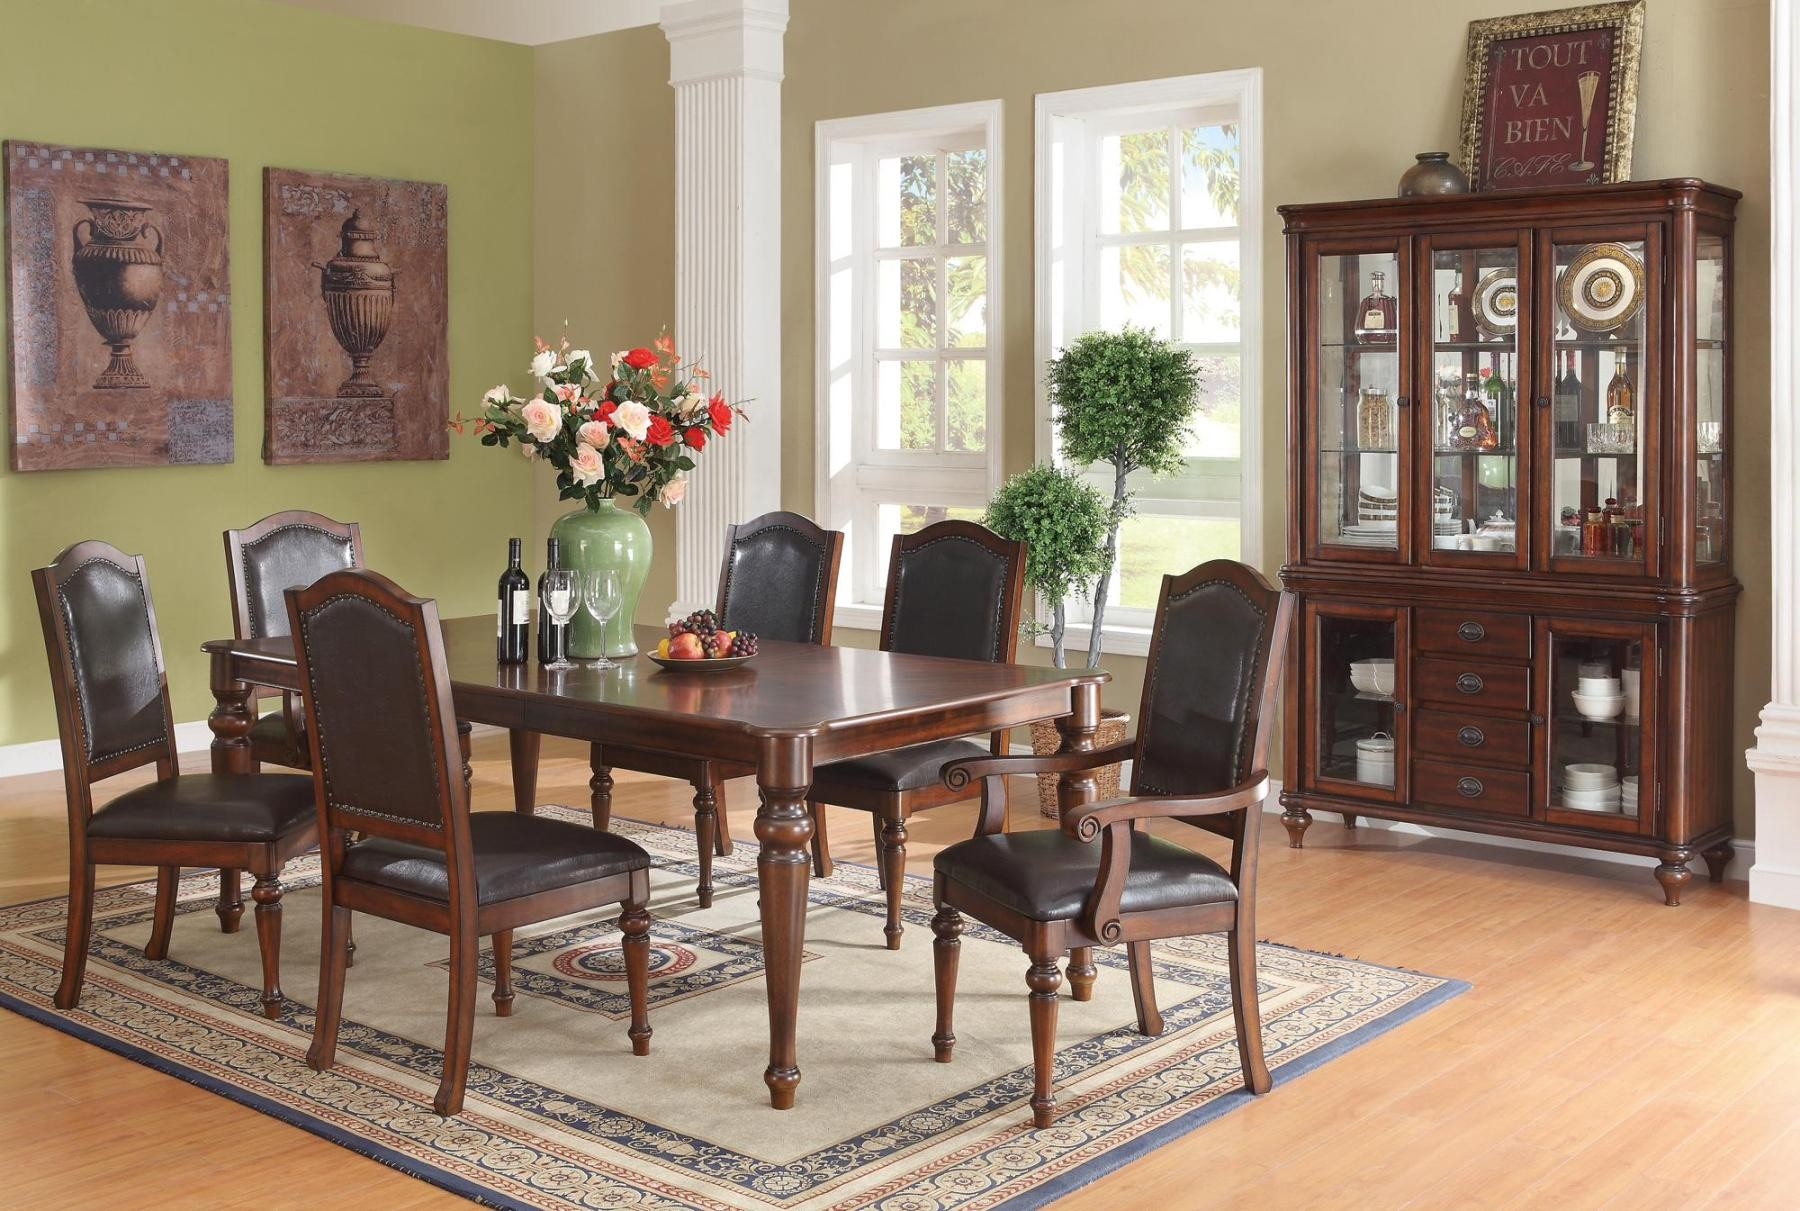 Anson brown rectangular dining room set 1034 coaster for Brown dining room set